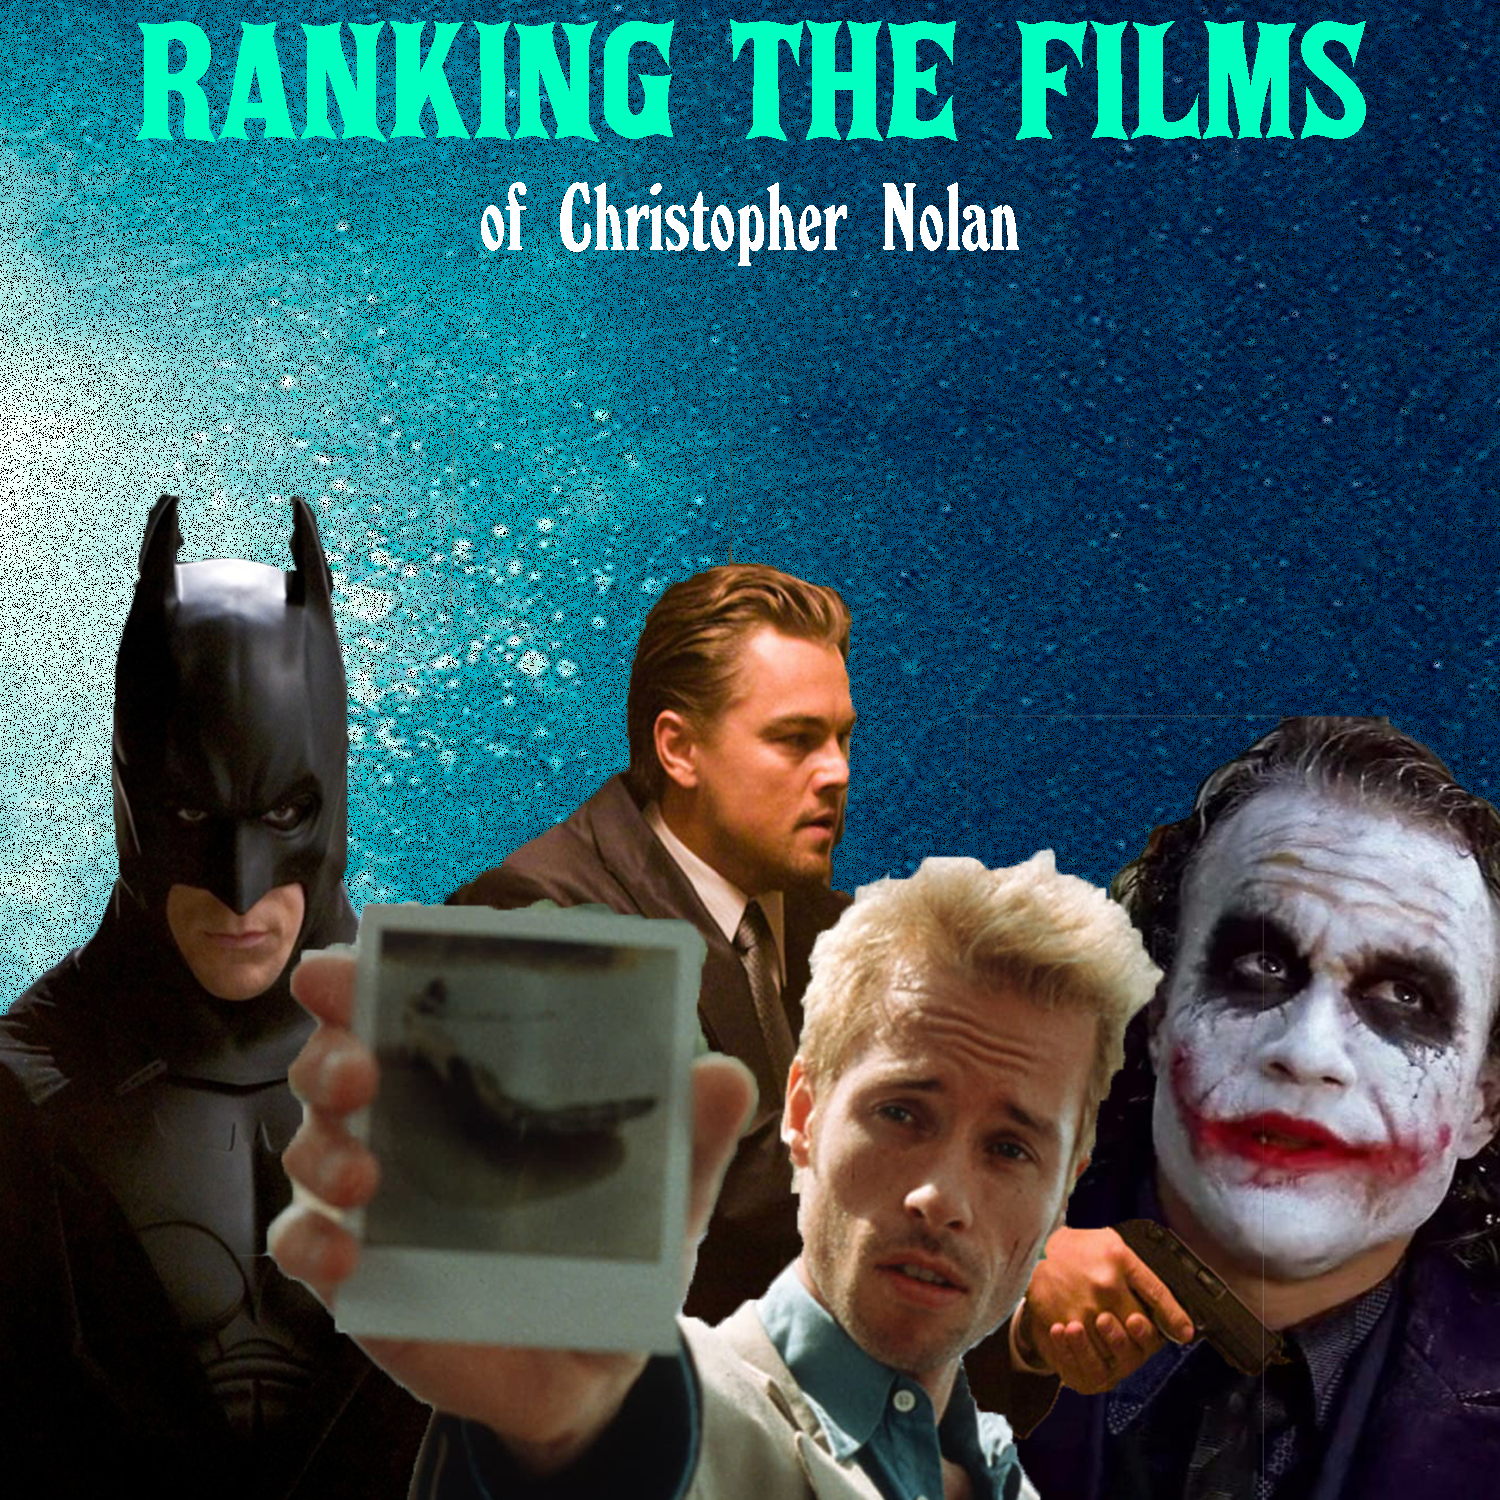 Christopher Nolan, best known for his big-budget spectacles, has been making films for the better part of 20 years and he shows no signs of slowing down. From psychological thrillers to action to sci-fi to superheroes, Nolan has proven that he's capable to of creating wholly unique films that aren't bound within any certain kind of genre framework!  This is by no means a definitive ranking of Nolan's films however this is how we here at Mandalay Social Club would rank his 10 feature films based on our personal preference!